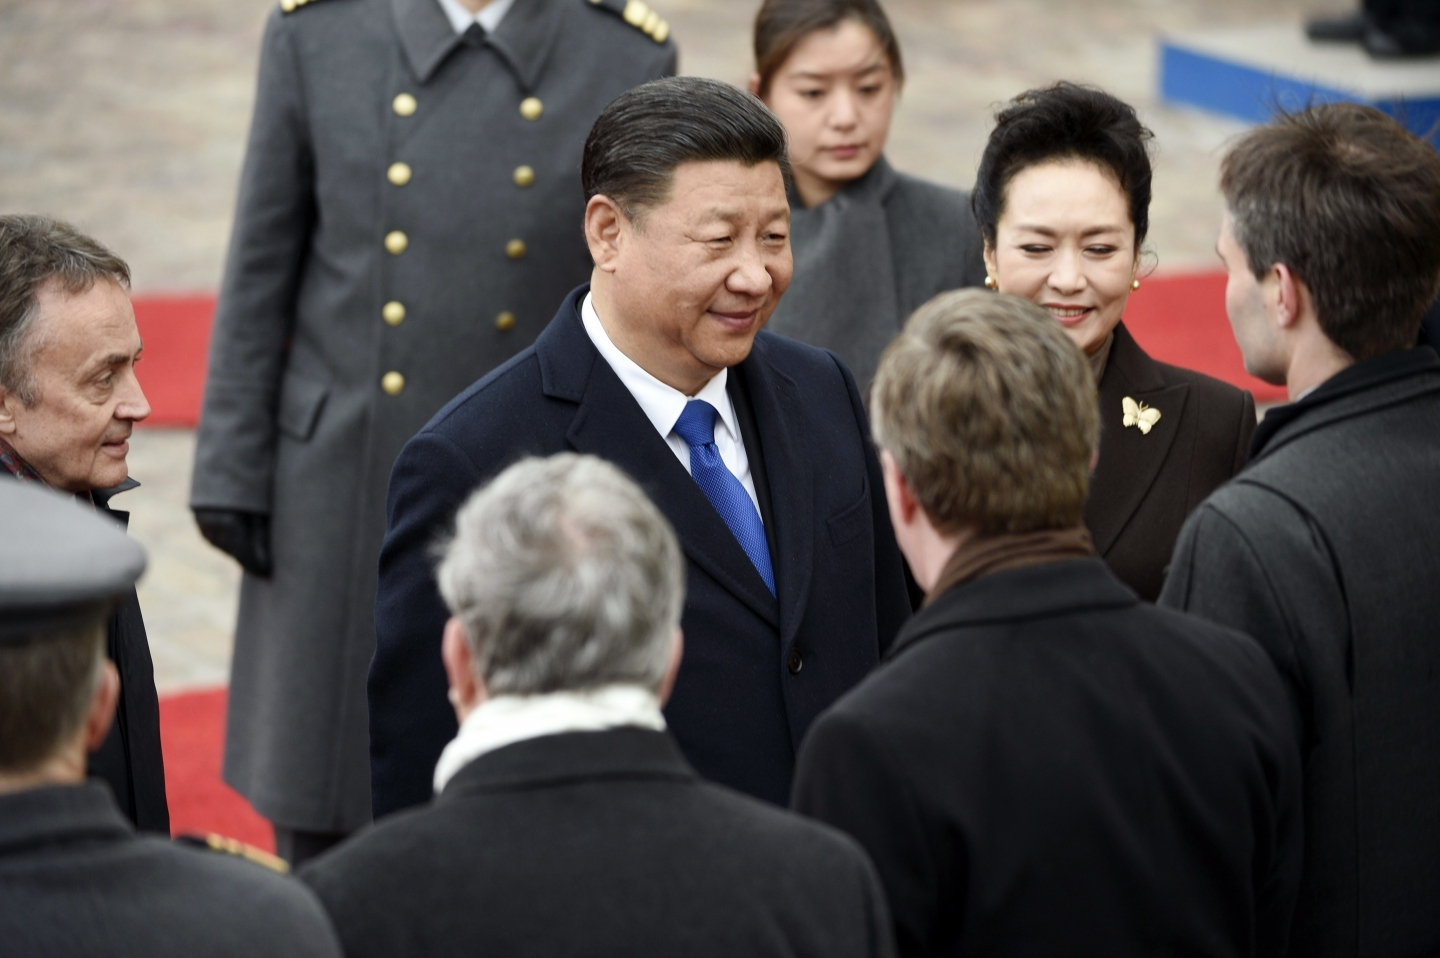 China's President Xi Jinping and his wife Peng Liyuan are greeted during the official welcoming ceremony at the Presidential Palace in Helsinki Wednesday, April 5, 2017. (Martti Kainulainen/Lehtikuva via AP)